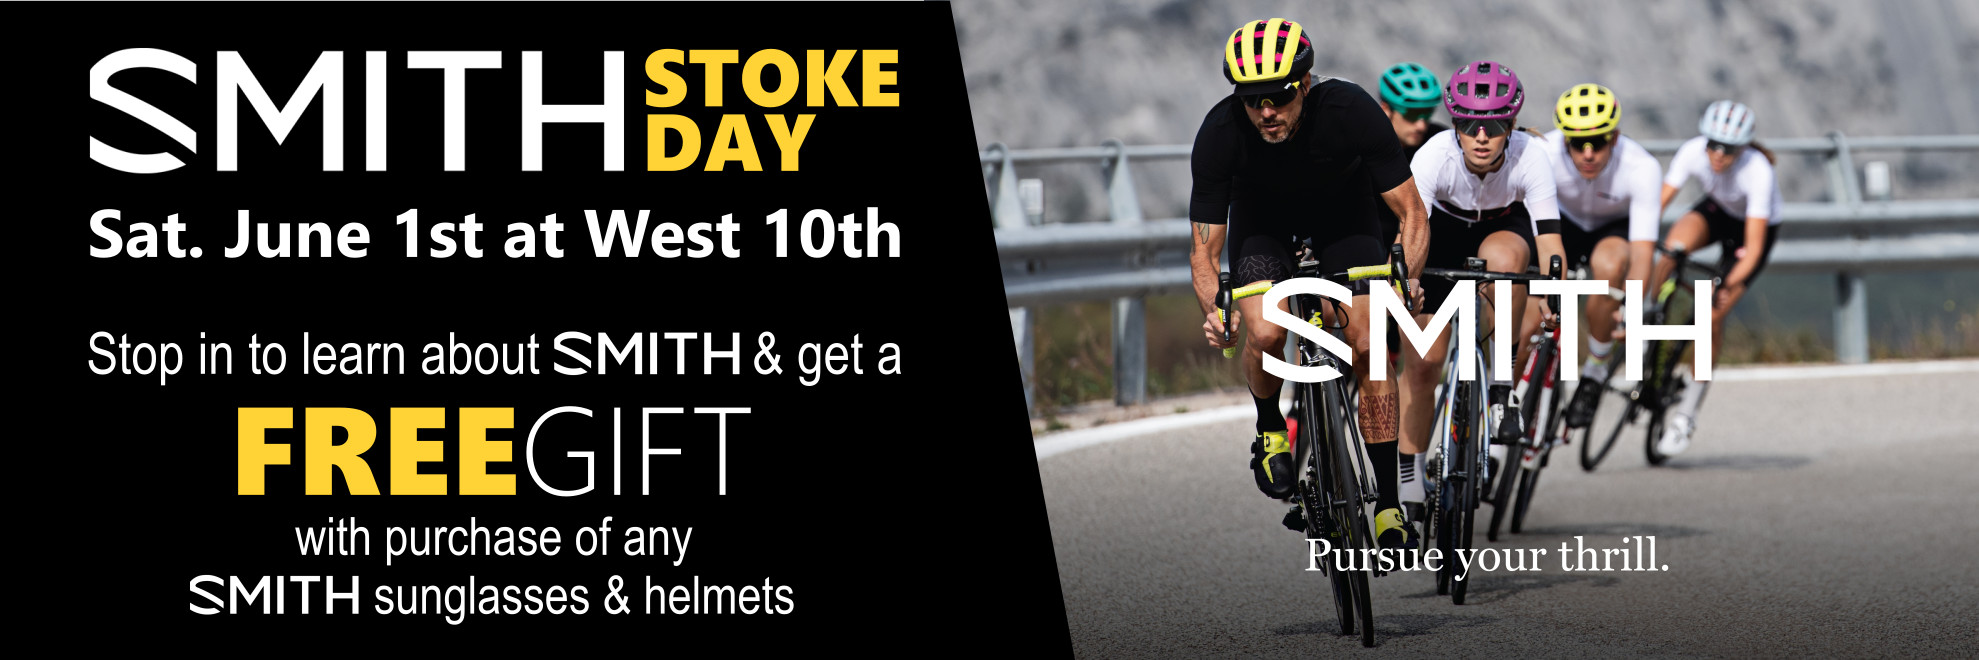 SMITH Stoke Day - Sat. June 1st at West 10th